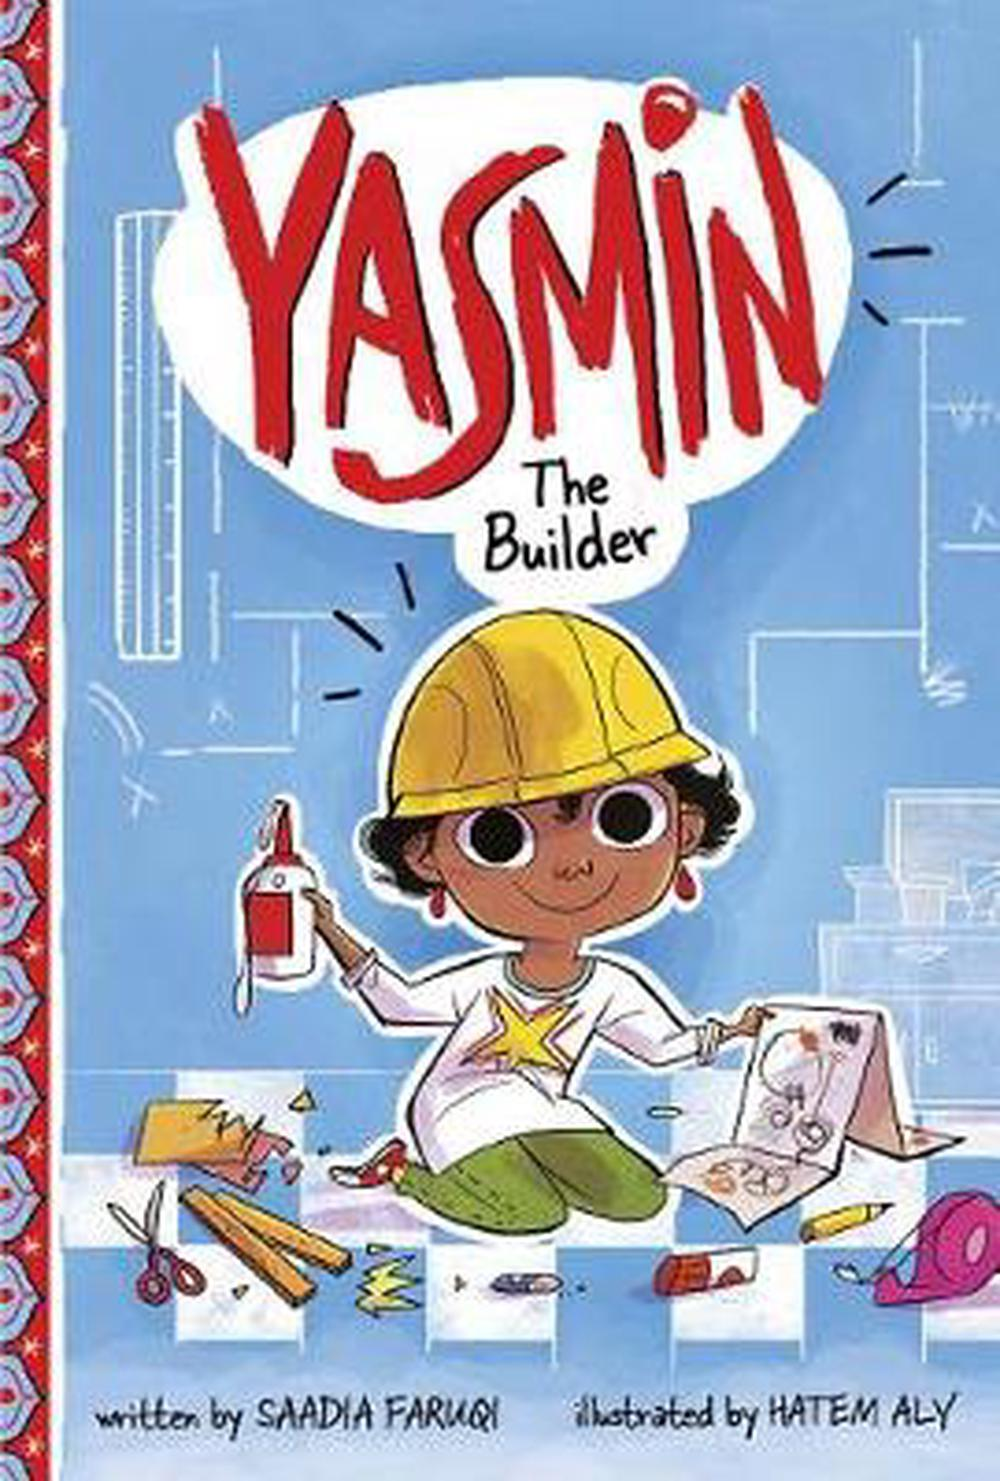 Yasmin the Builder by Saadia Faruqi, ISBN: 9781515827306